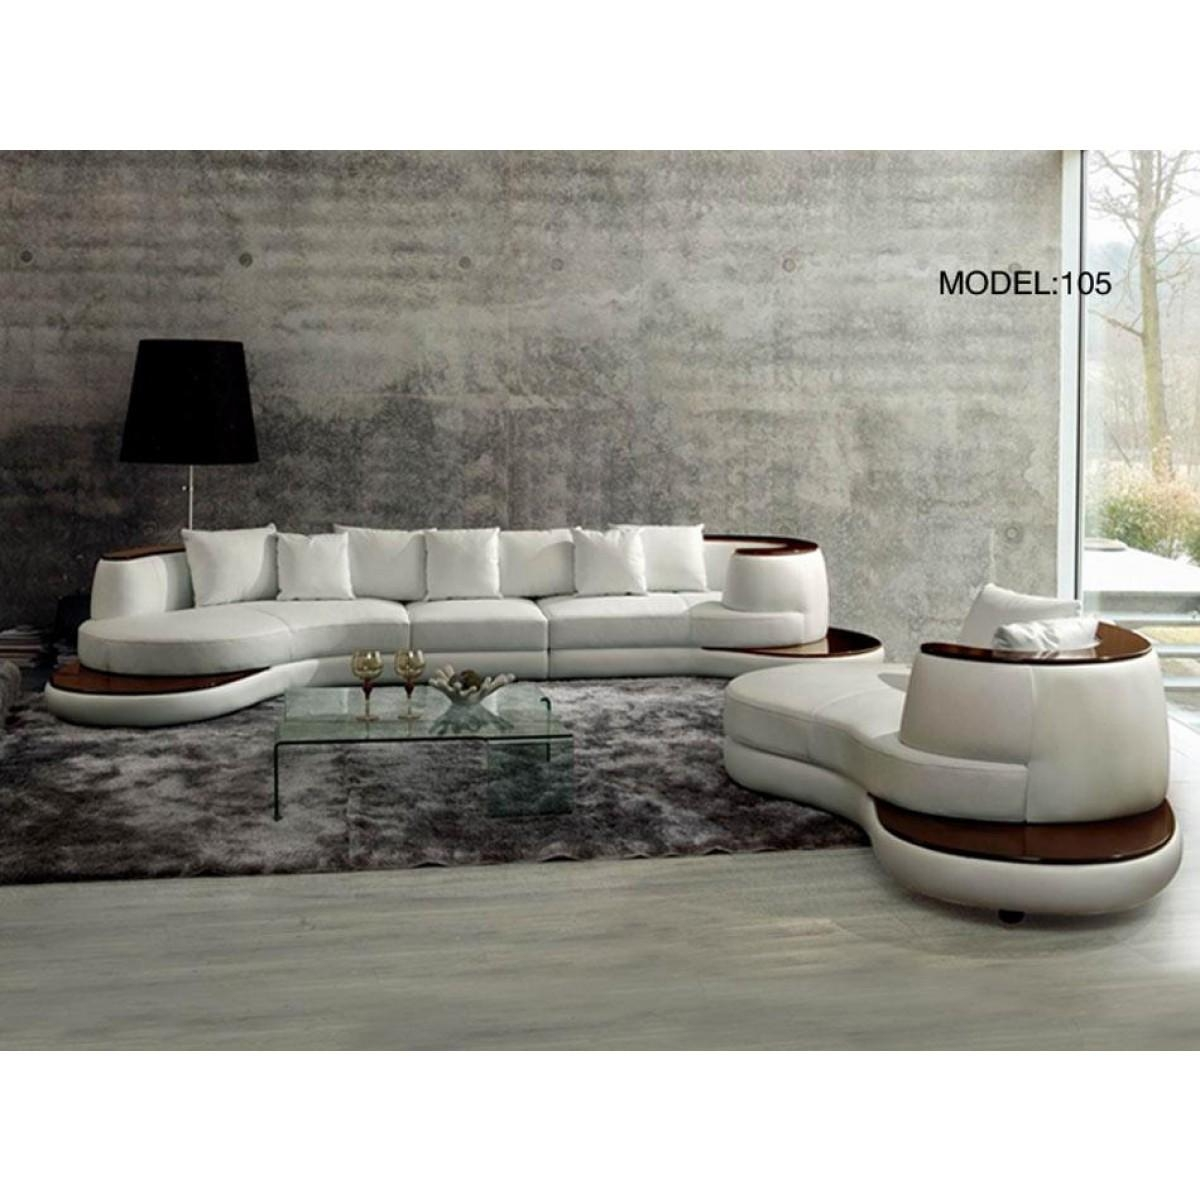 Contemporary & Luxury Furniture; Living Room, Bedroom,la Furniture Intended For Rounded Sofa (Image 2 of 20)